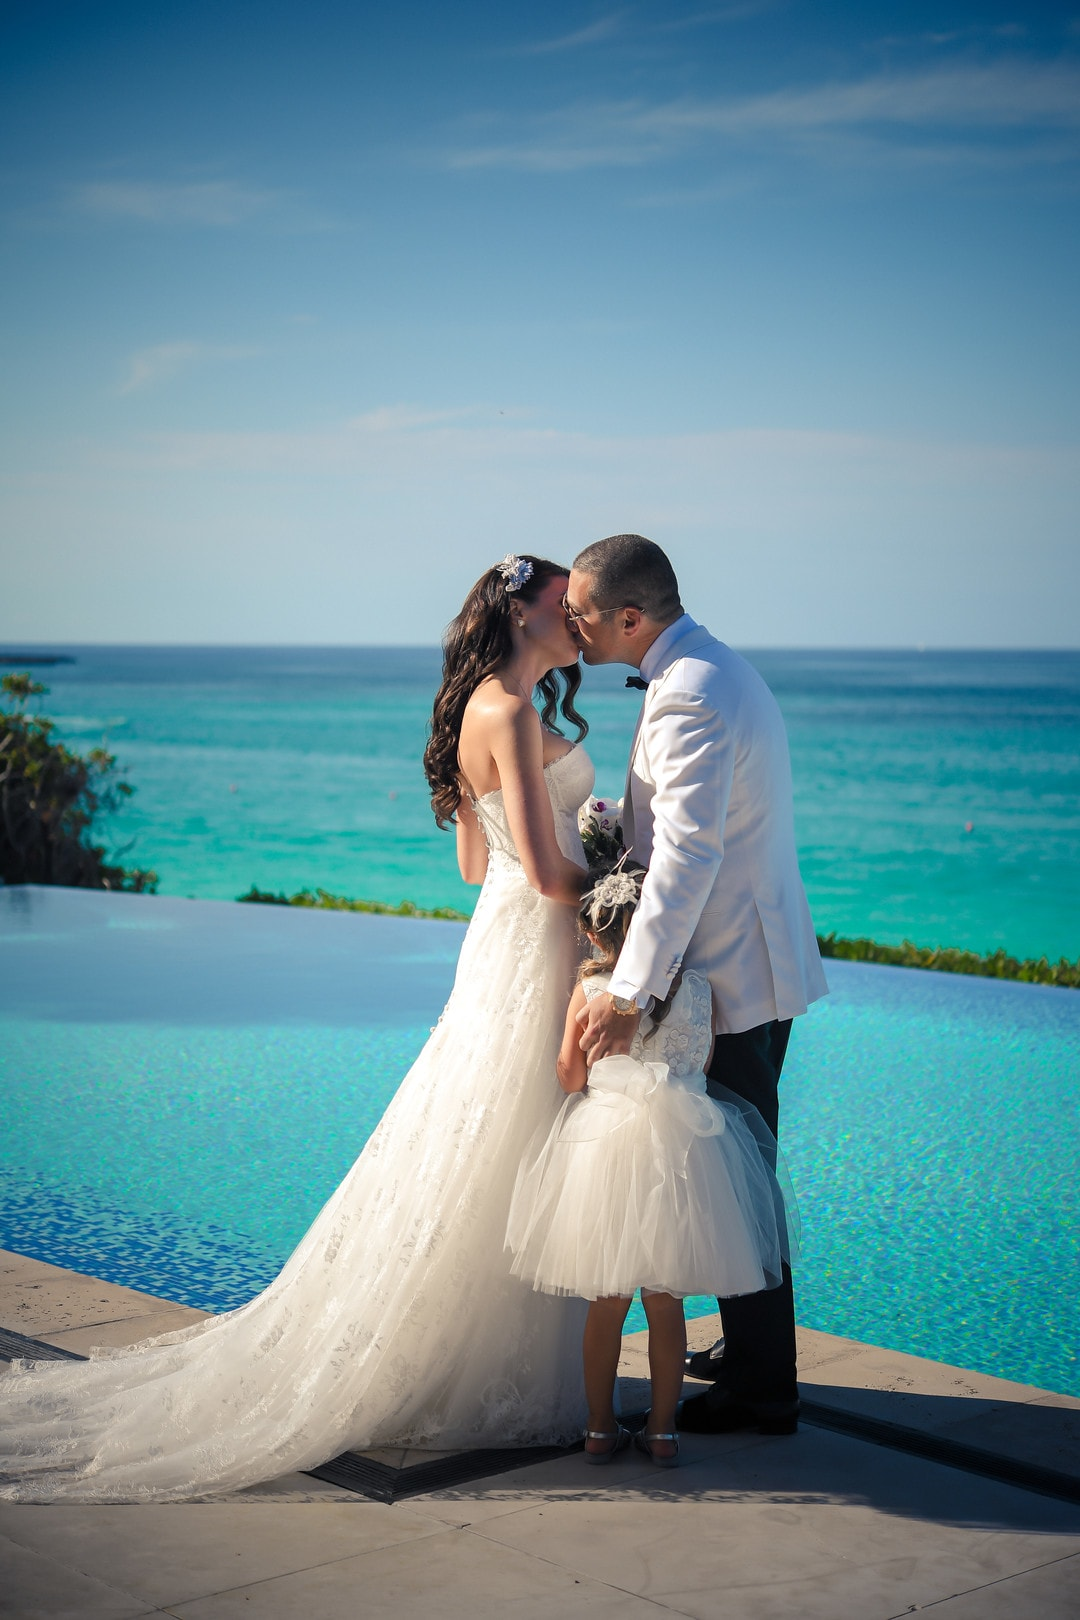 Ashley & Adam's Exquisite Destination Wedding In Bahamas, Photography by Domino Arts Photography for Destination Wedding Blog Adriana Weddings